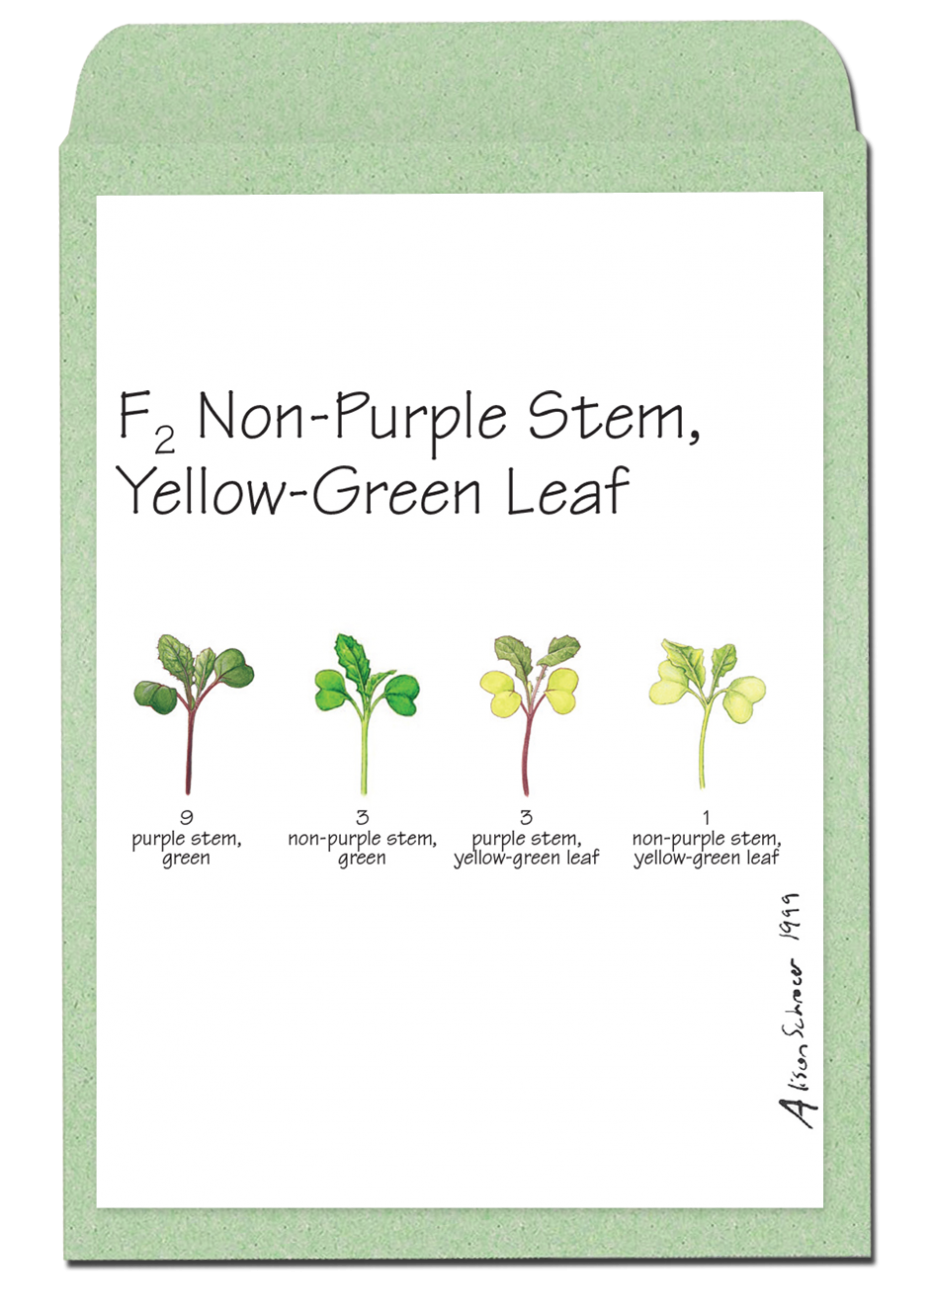 f2nonpurplestemyellowgreenleaf